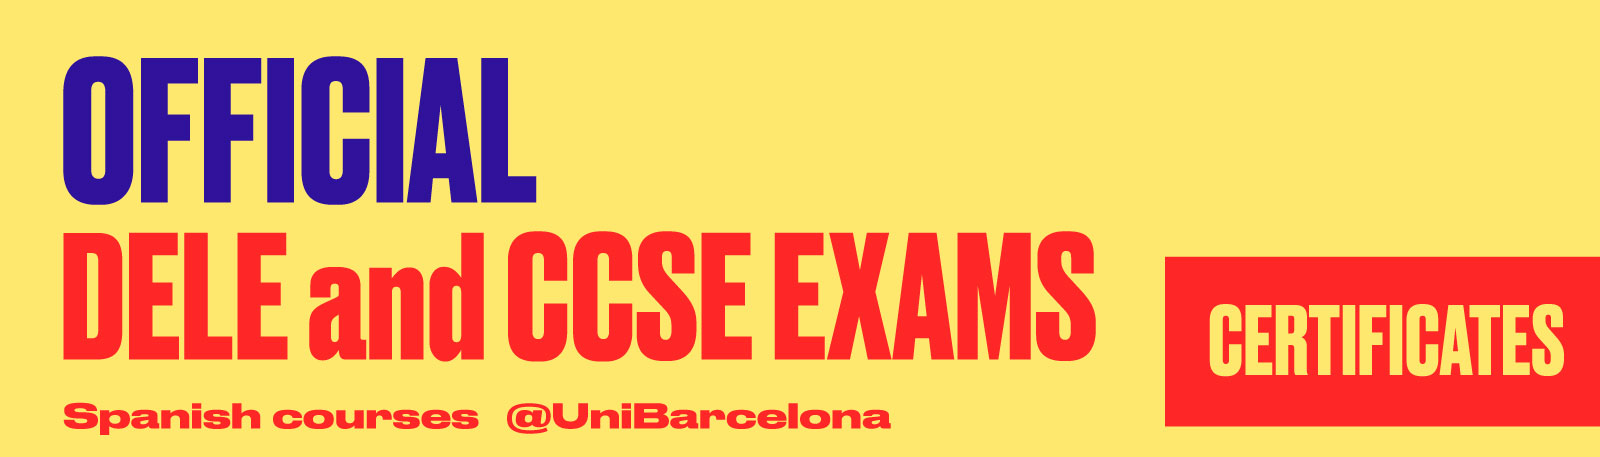 SPANIFY - DELE and CCSE Examens